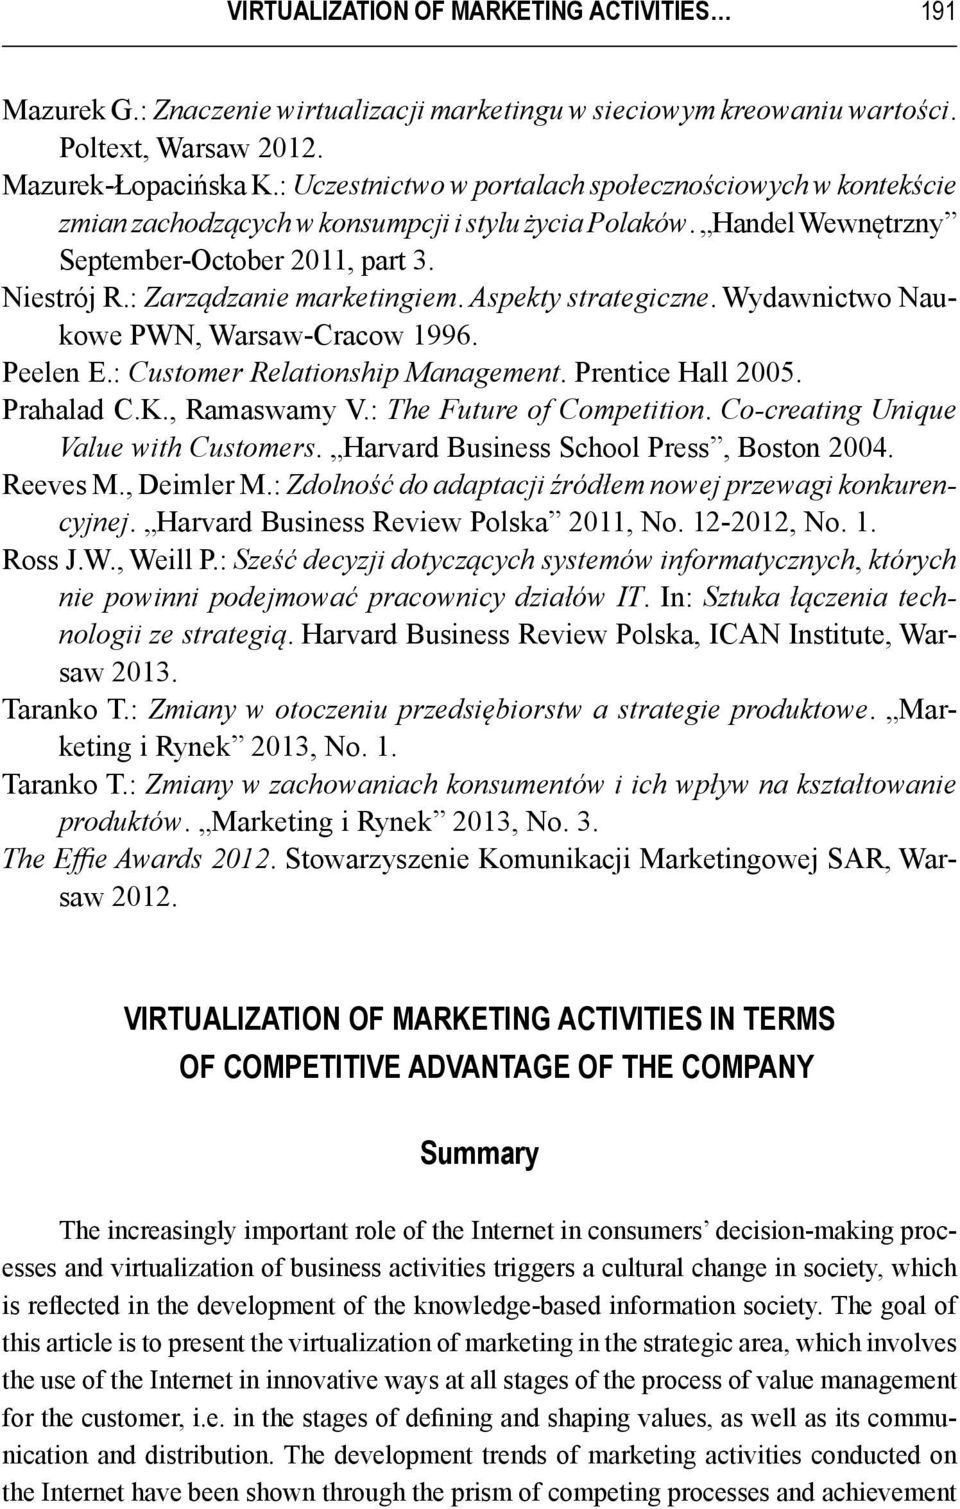 : Zarządzanie marketingiem. Aspekty strategiczne. Wydawnictwo Naukowe PWN, Warsaw-Cracow 1996. Peelen E.: Customer Relationship Management. Prentice Hall 2005. Prahalad C.K., Ramaswamy V.